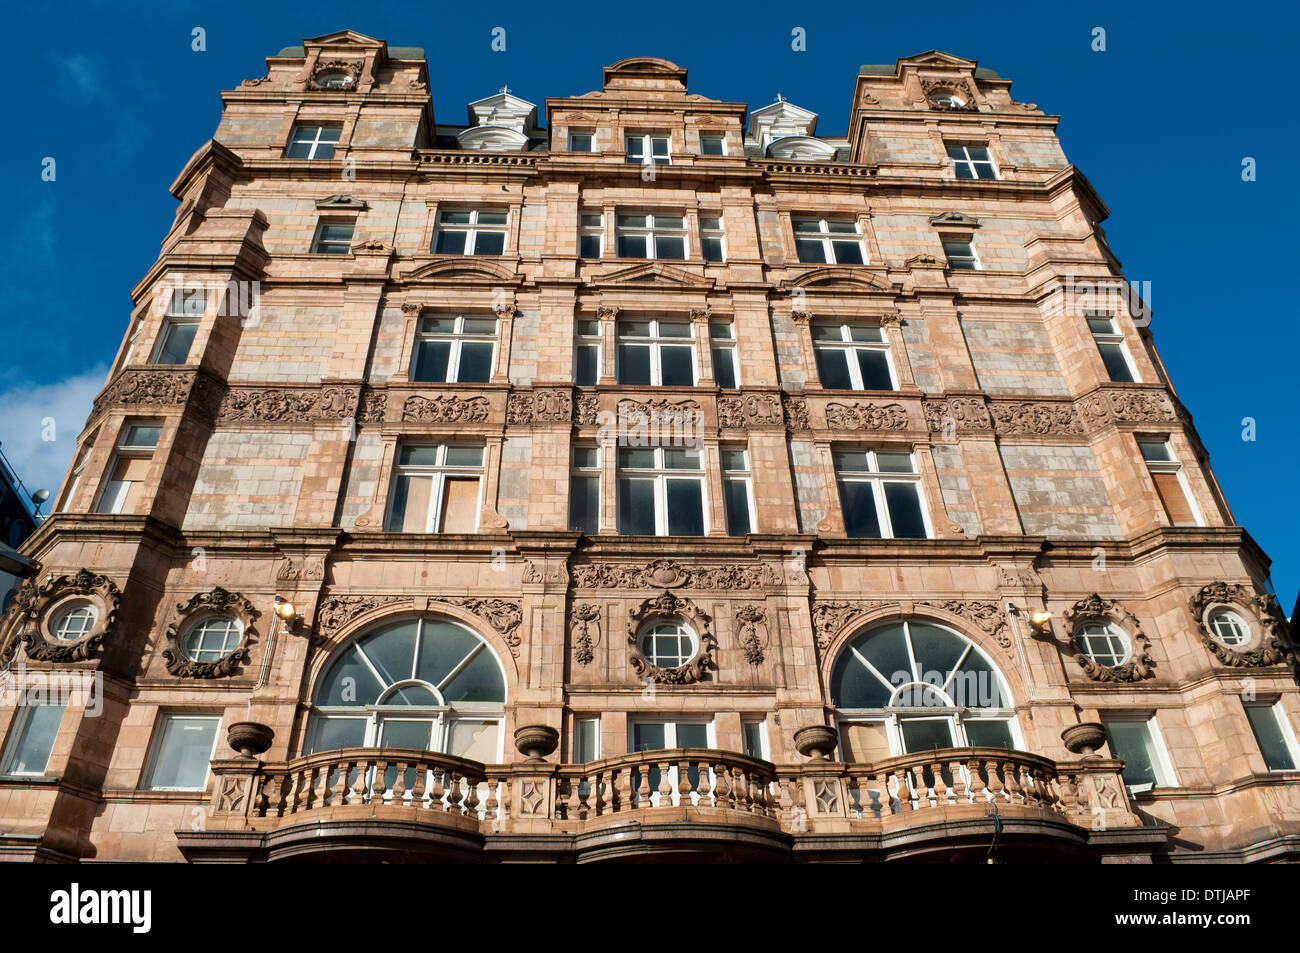 Historic building at Leicester Square, London, Uk - Stock Image